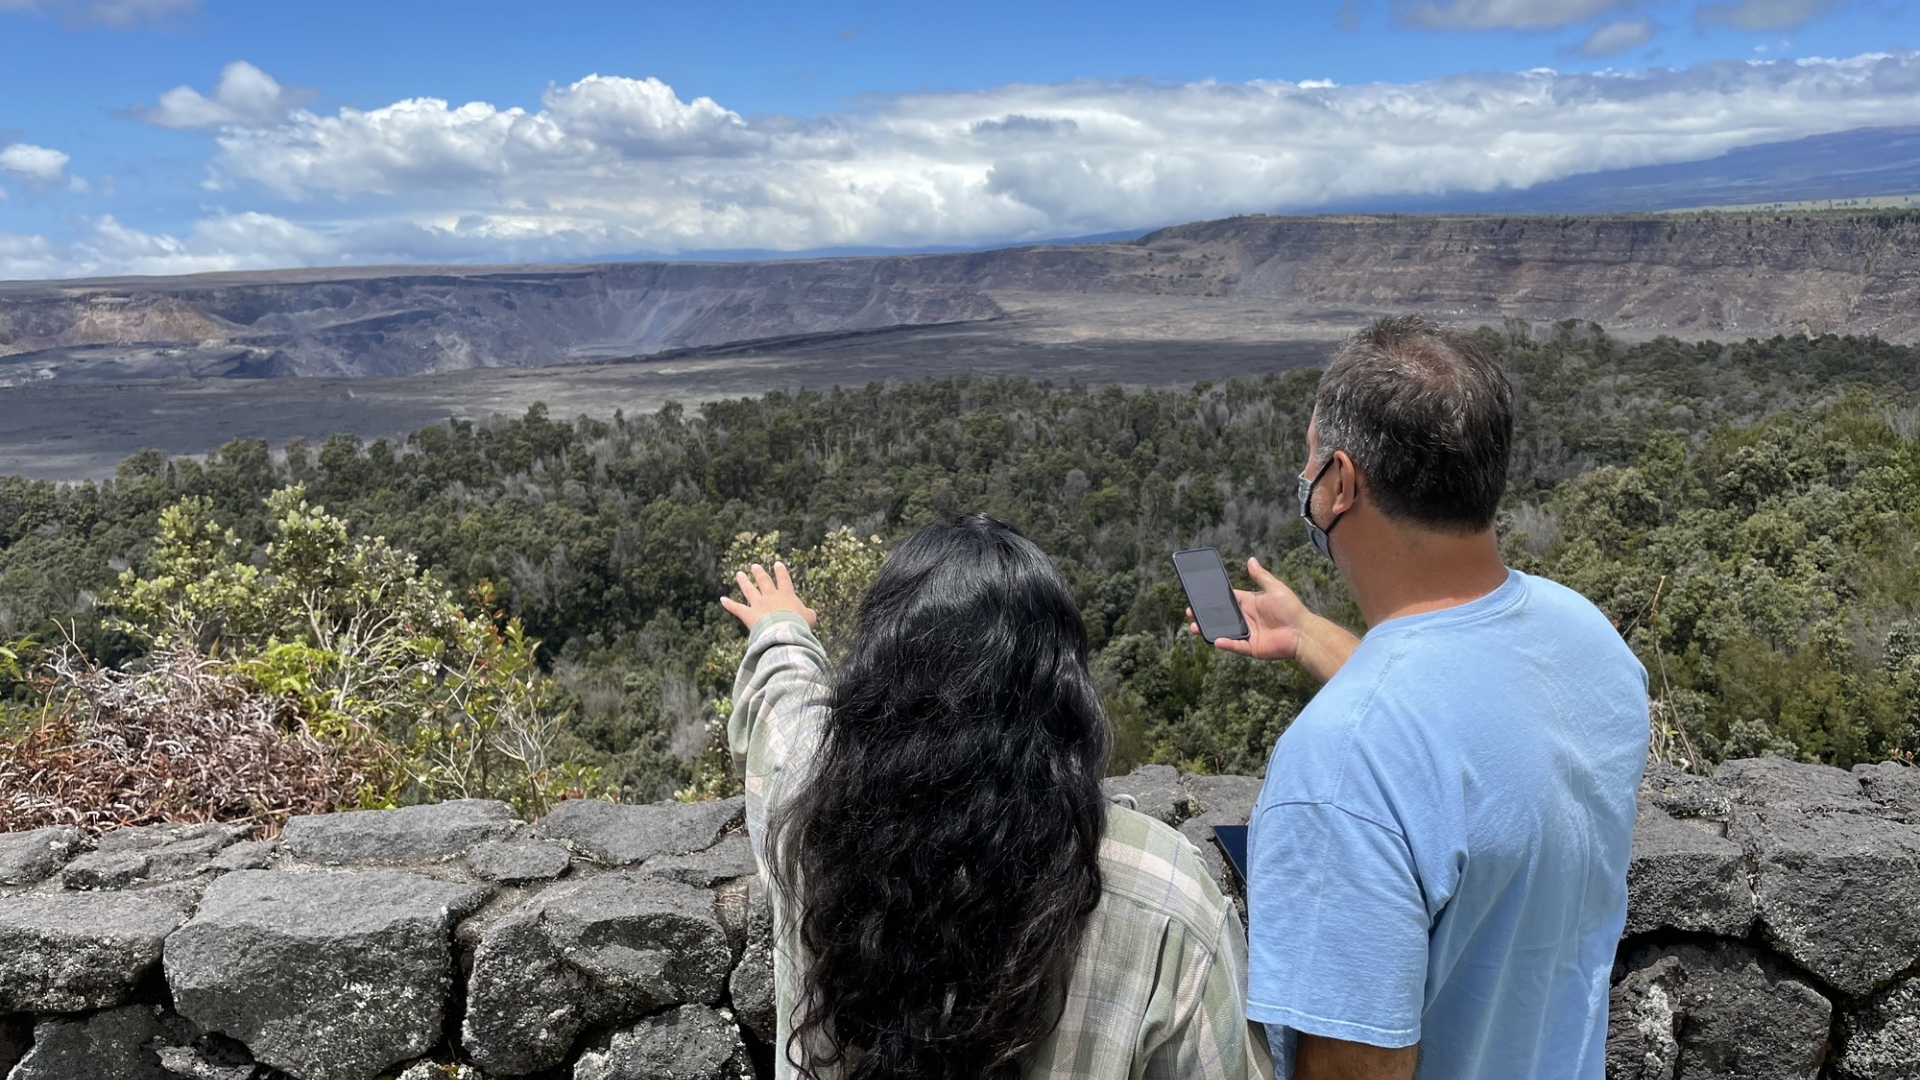 Two visitors standing at an overlook pointing towards a volcanic crater